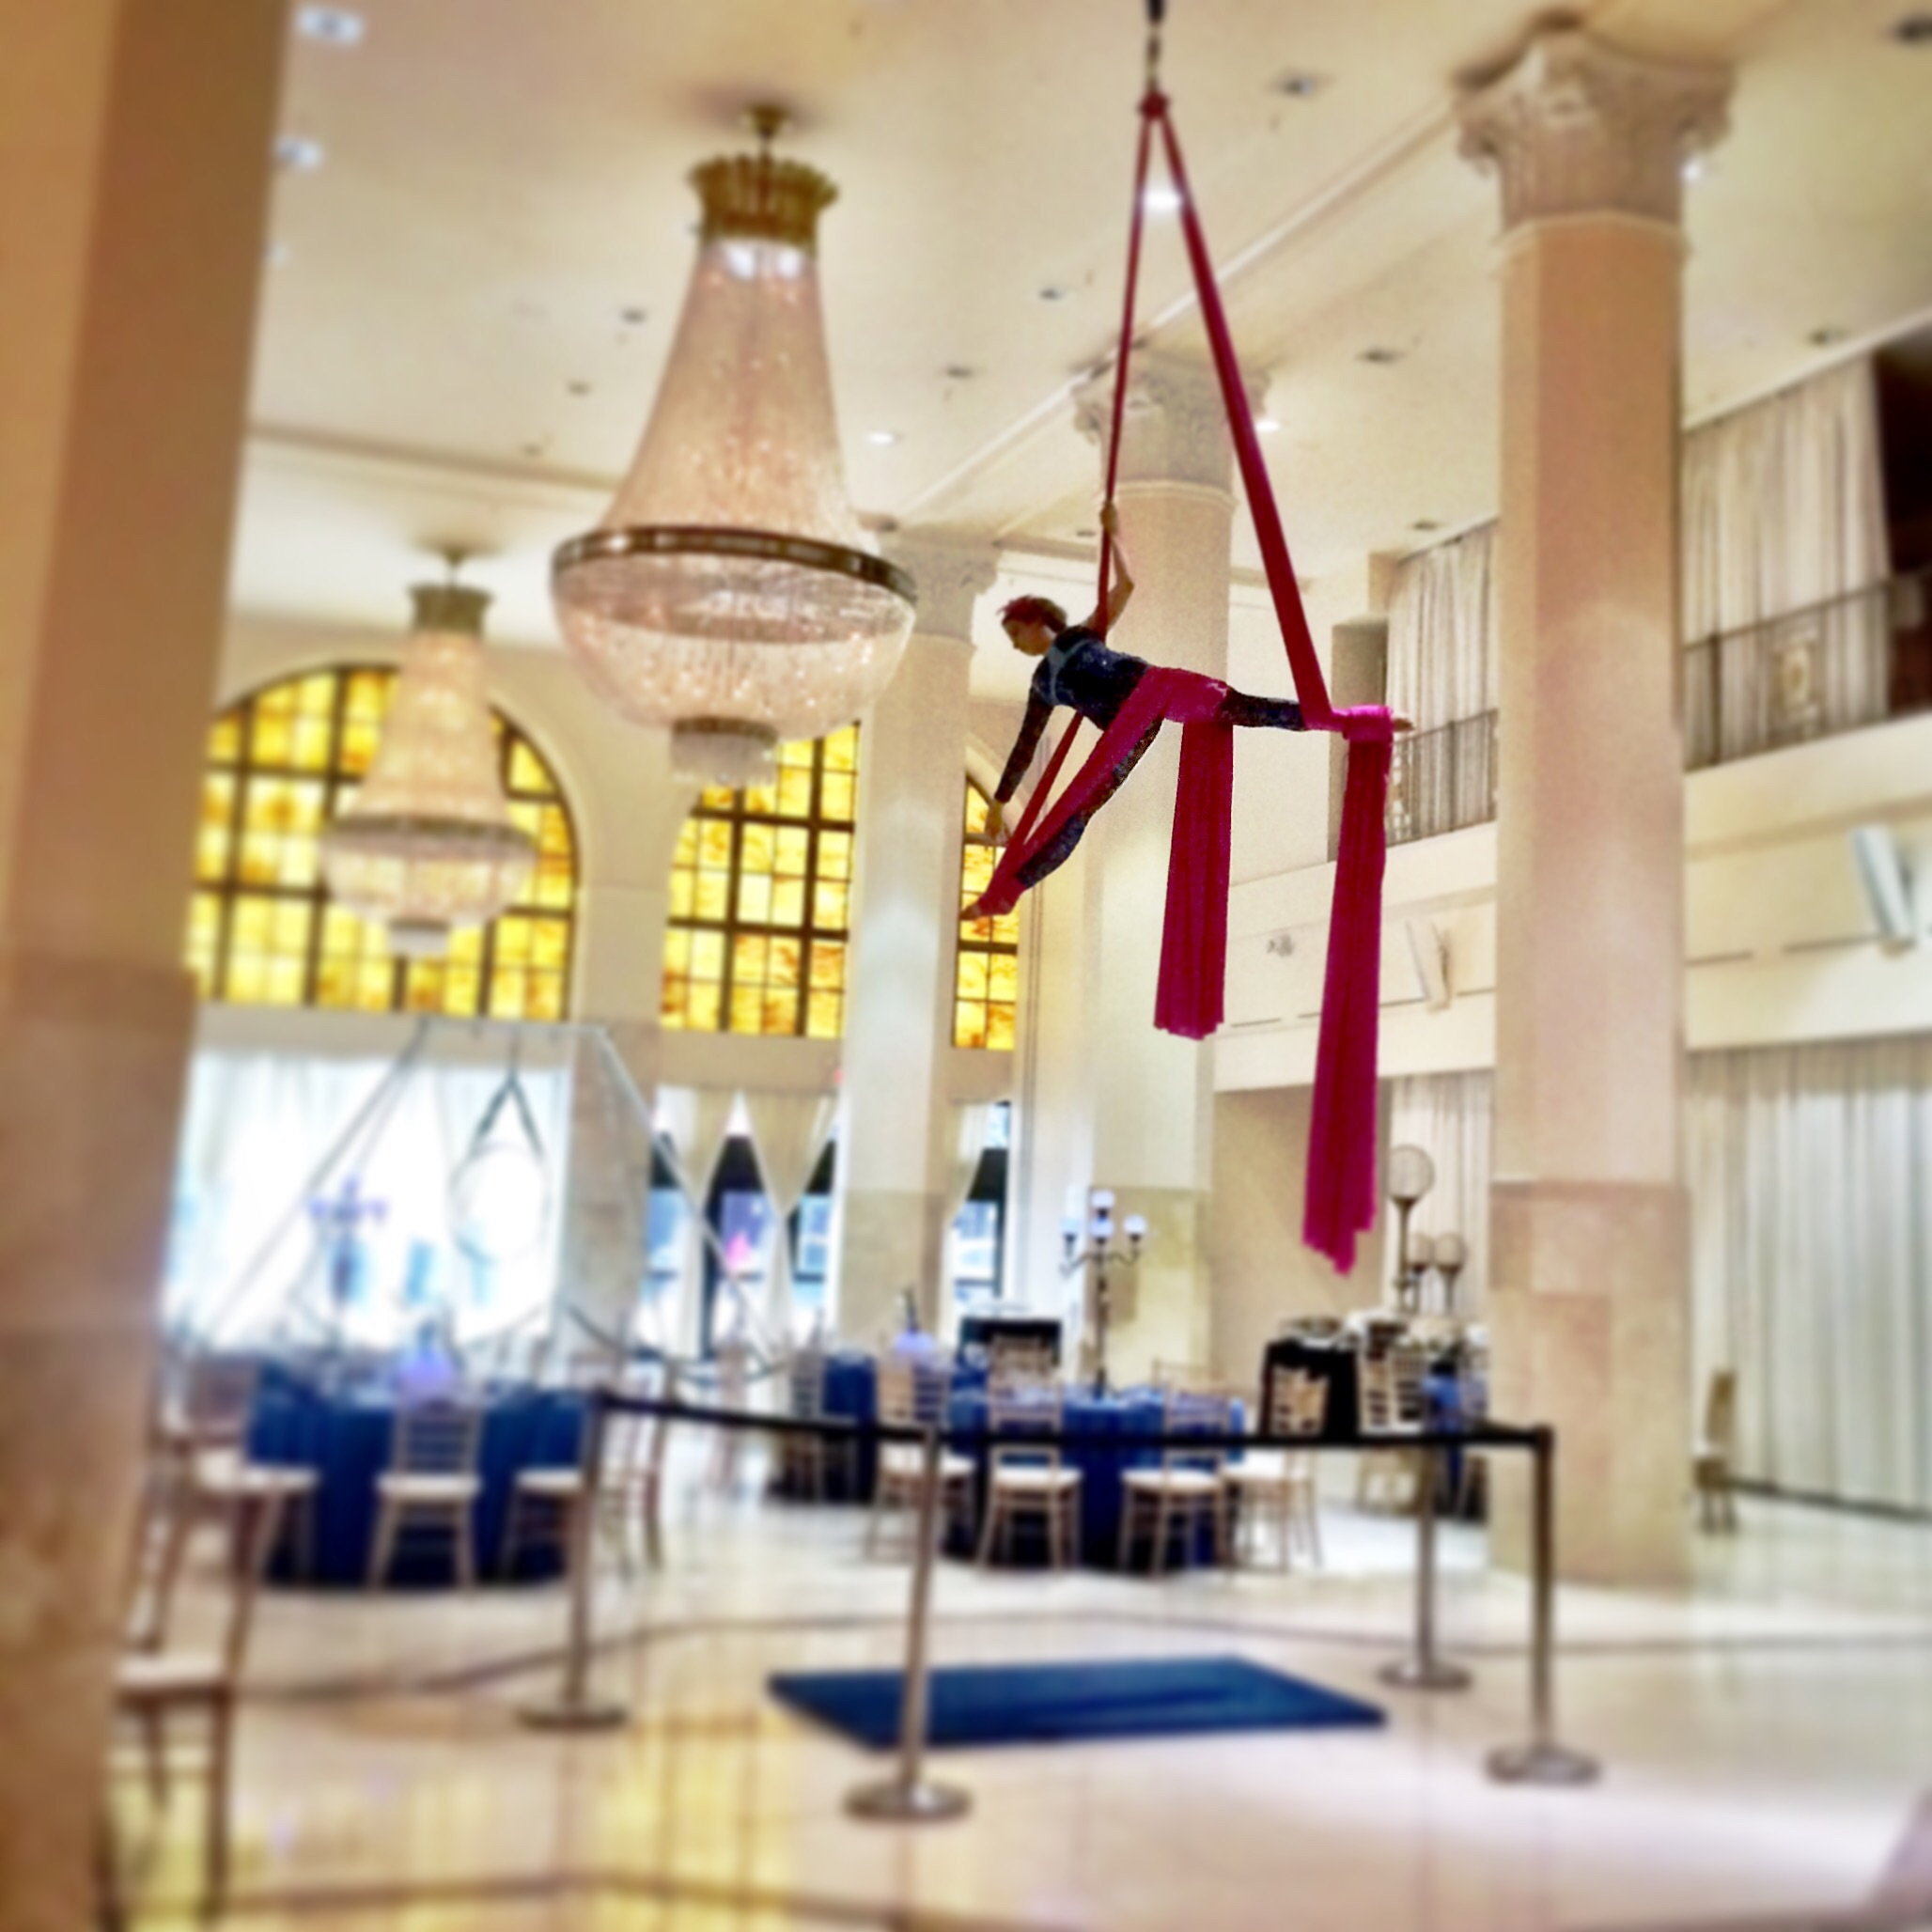 Yes. Aerialists.